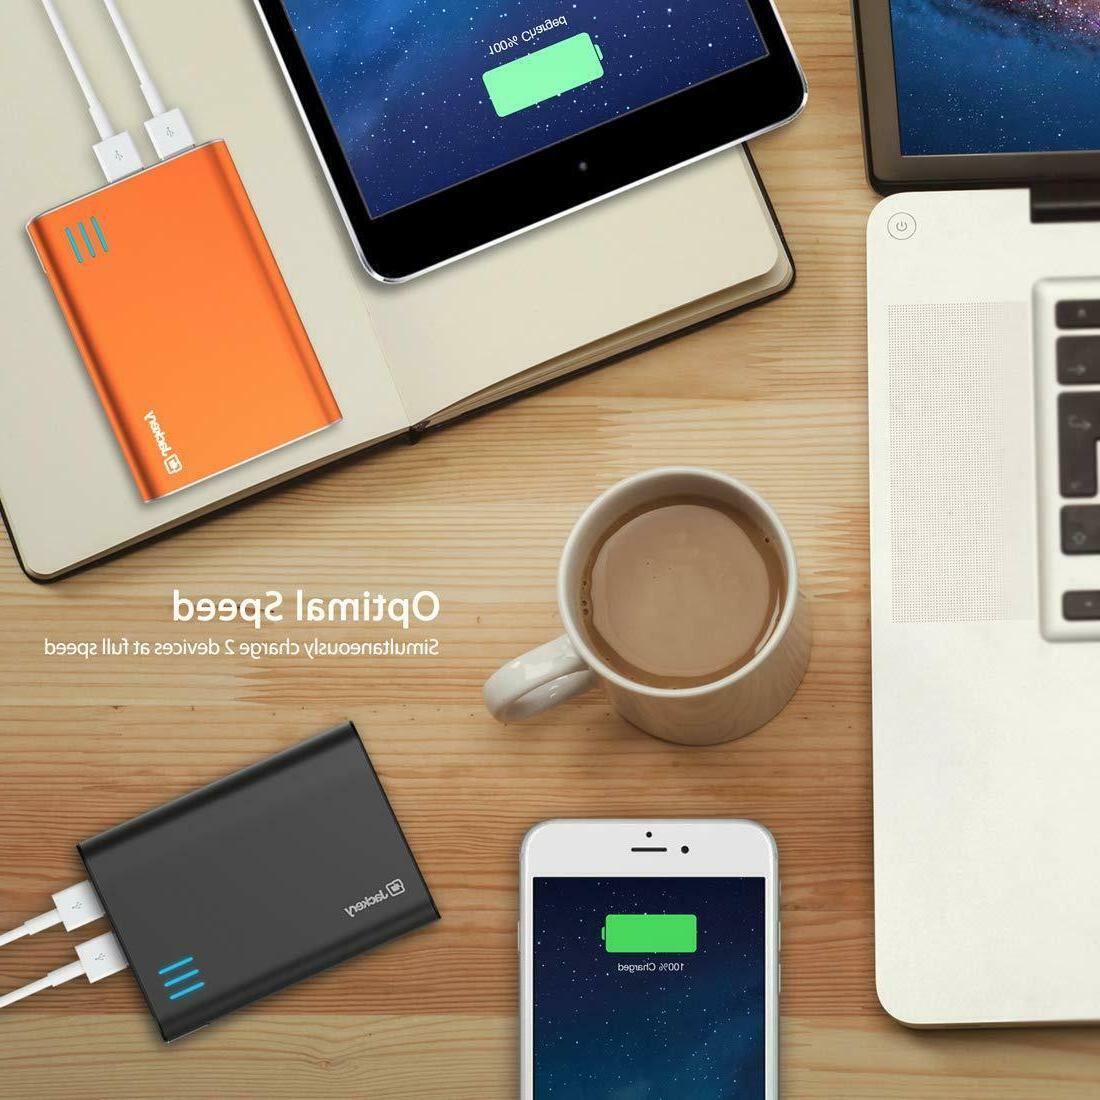 Jackery Portable Charger Giant+ 12000mAh Backup Power